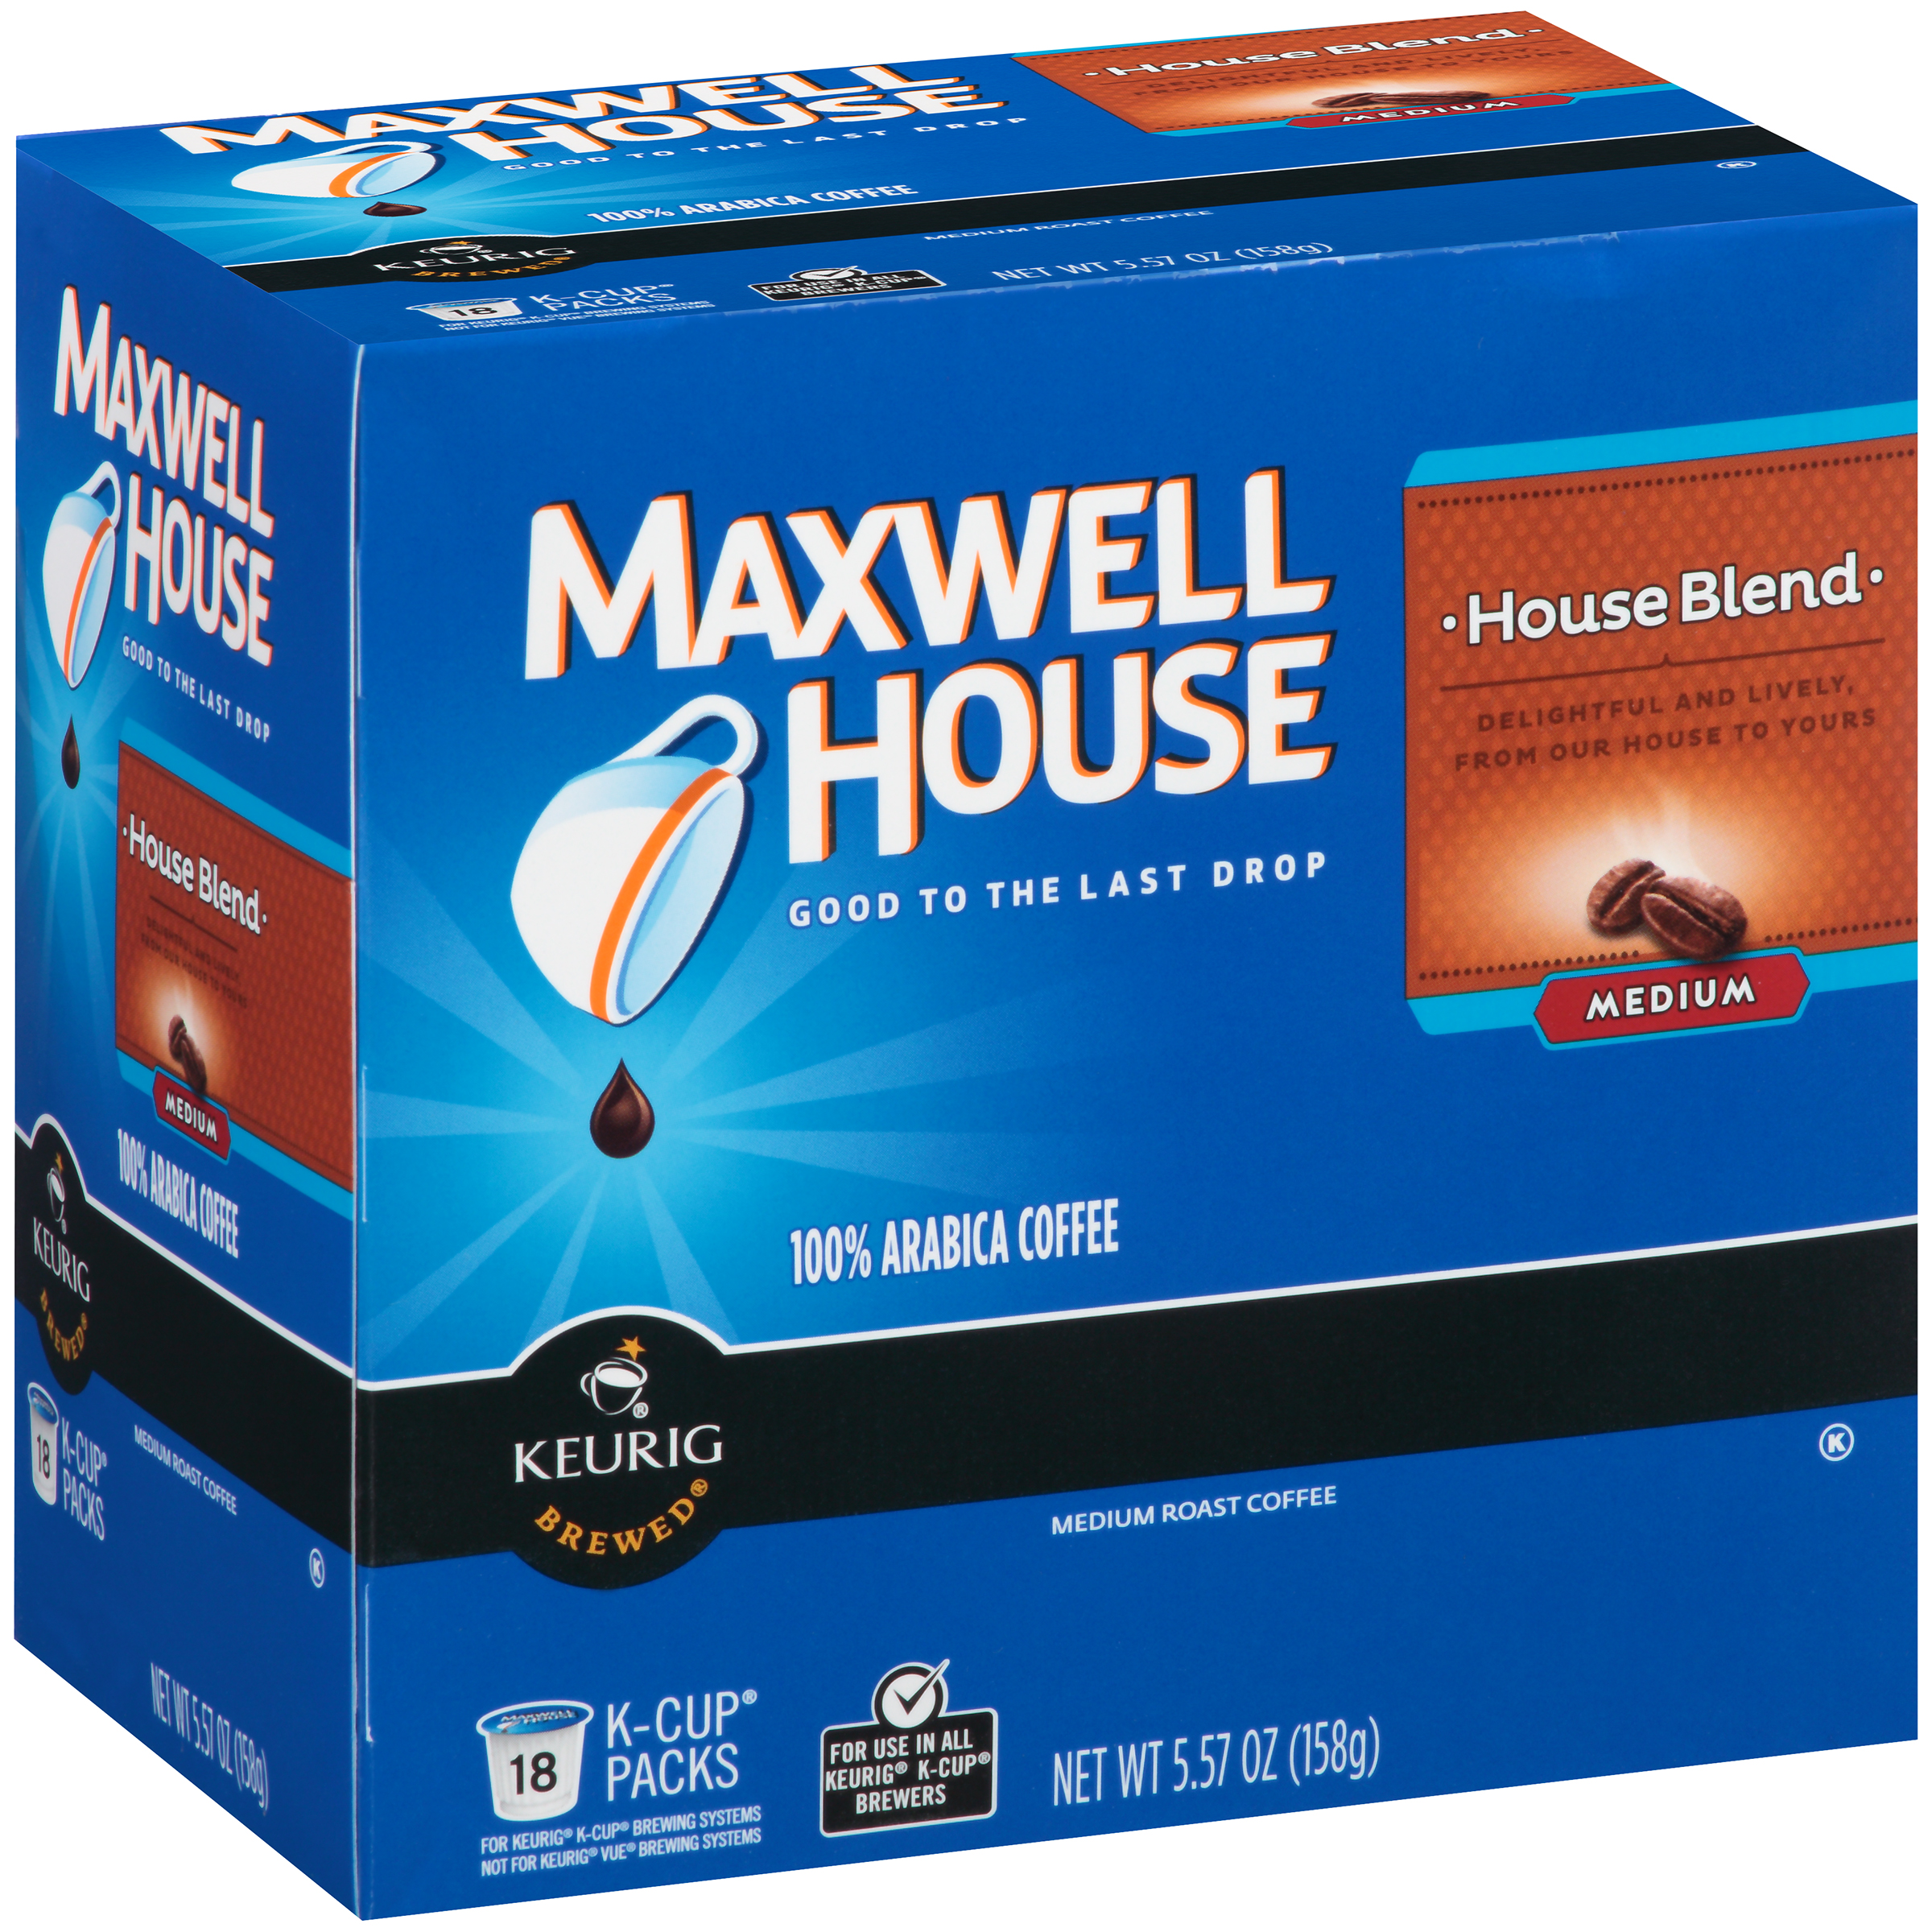 Maxwell House House Blend Coffee K-Cup® Packs 18 ct Box